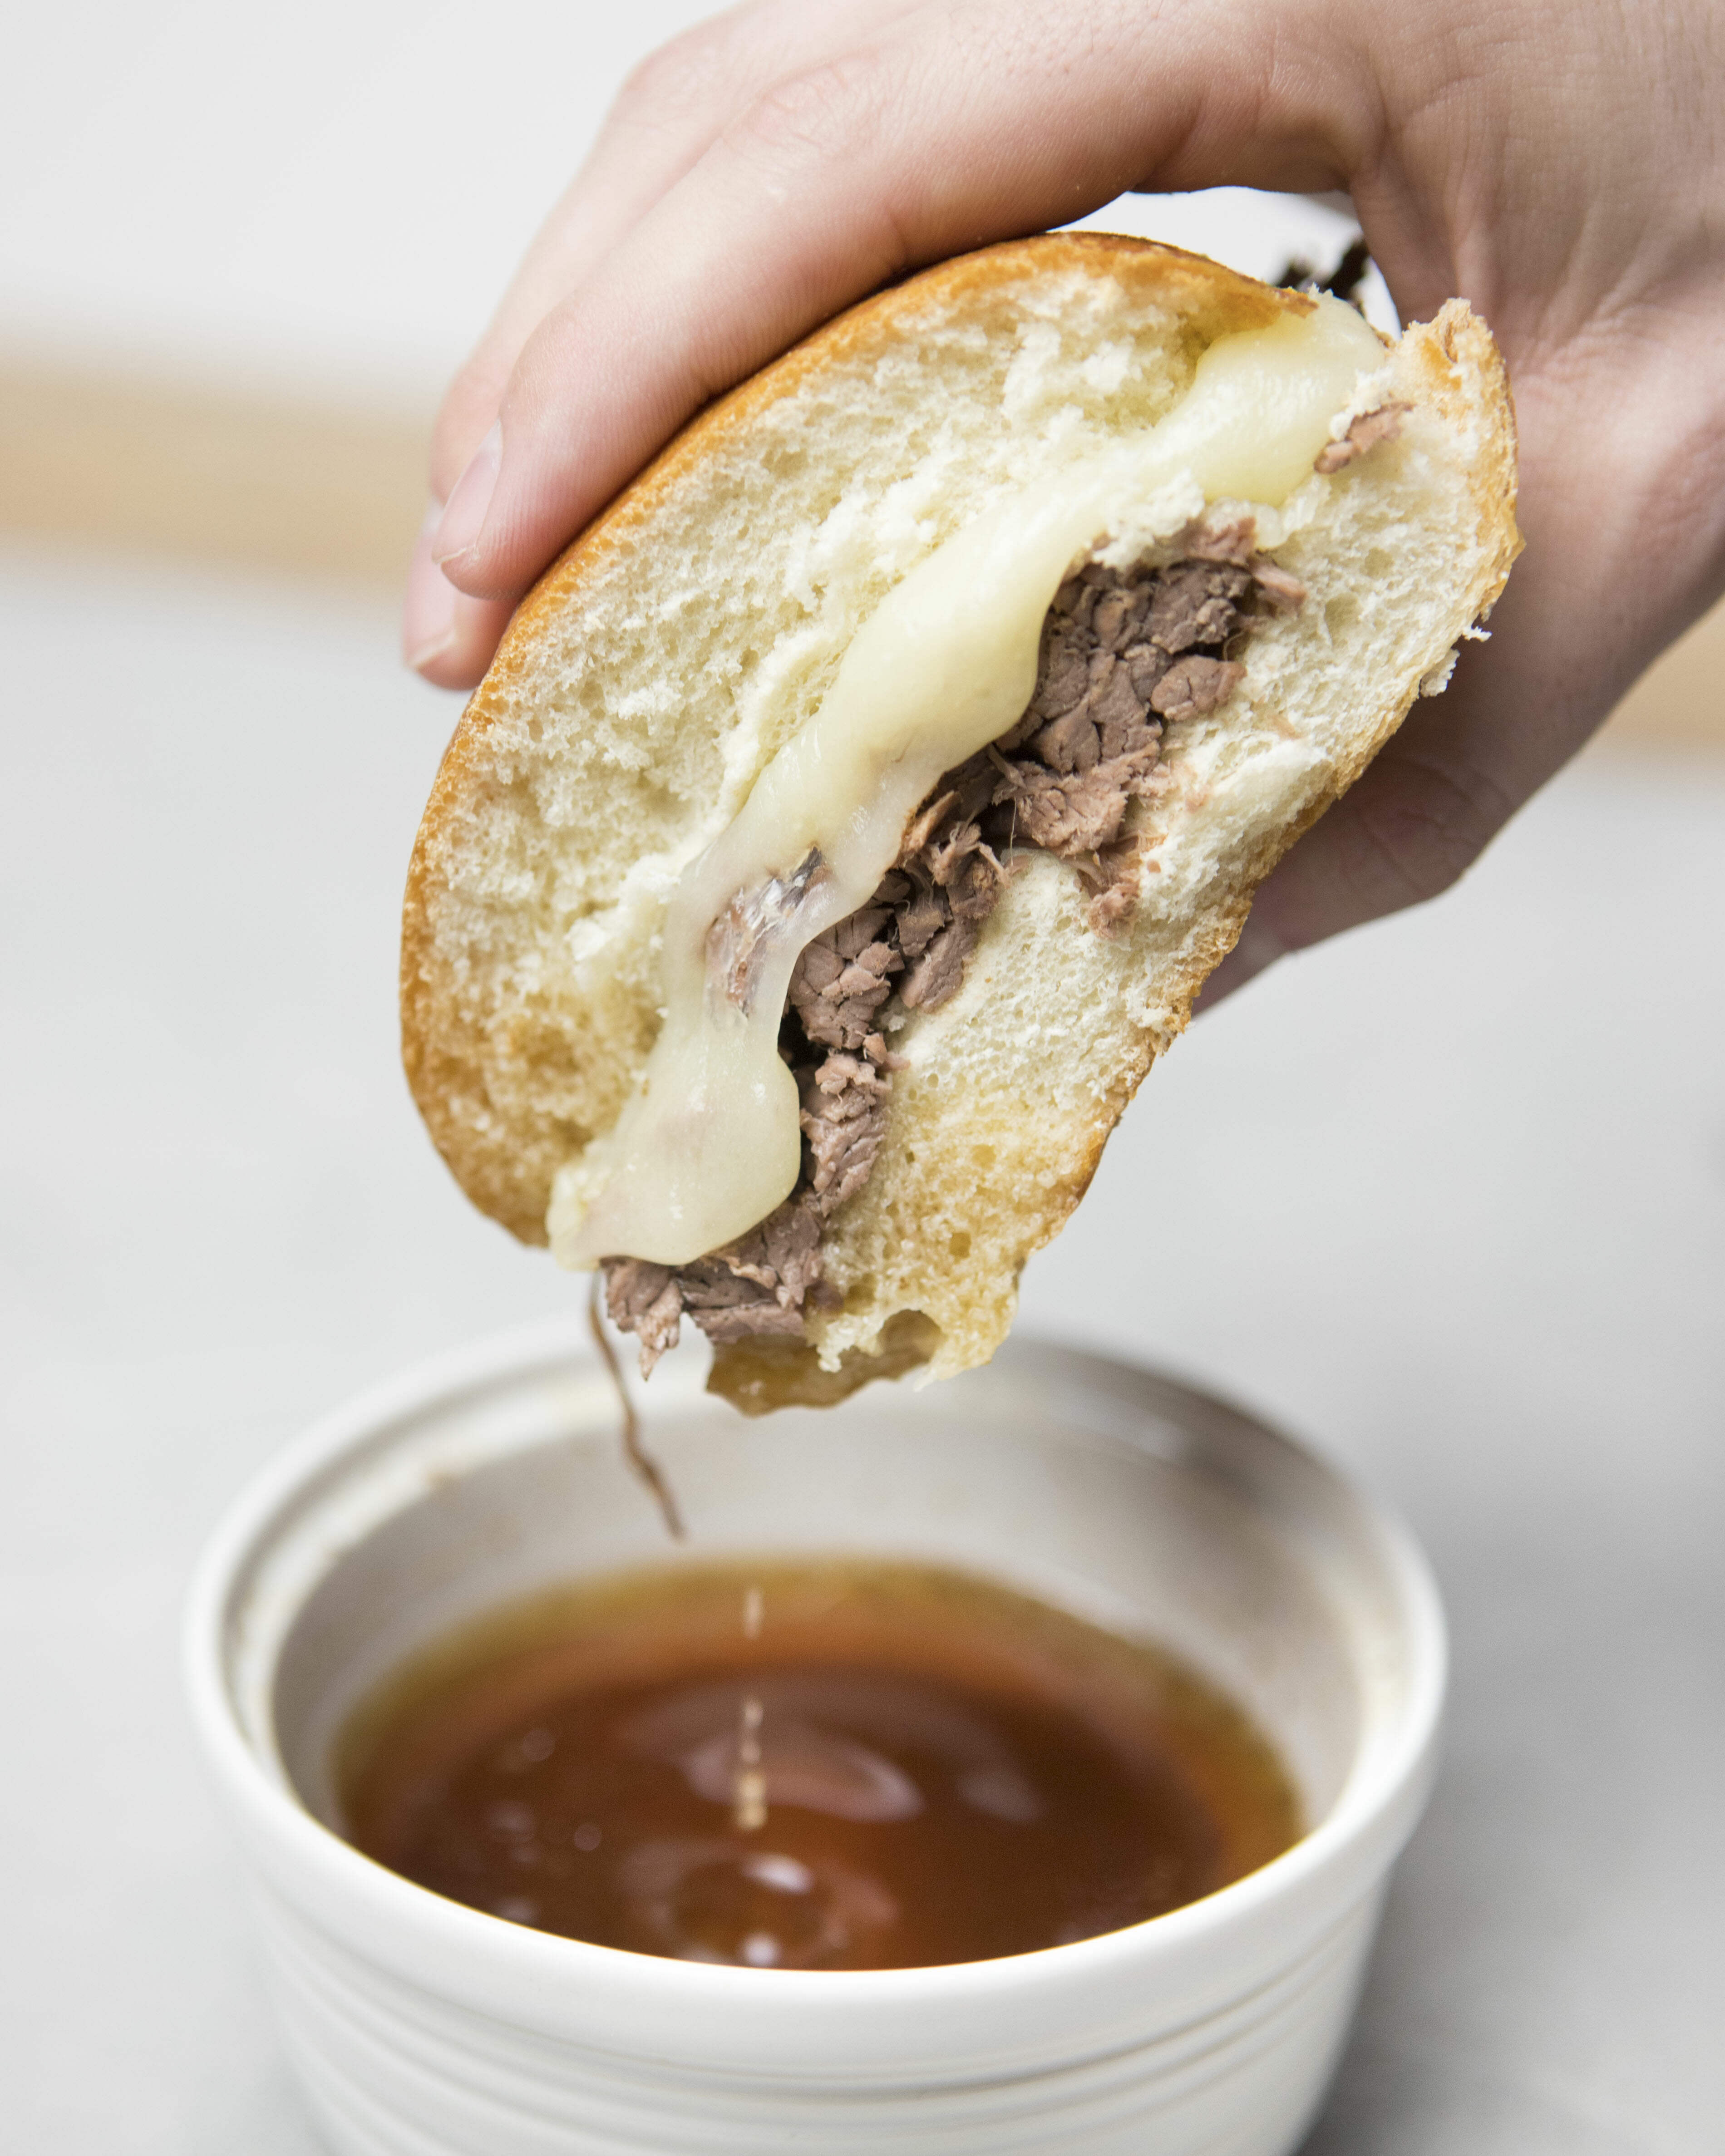 dipping french dip 2